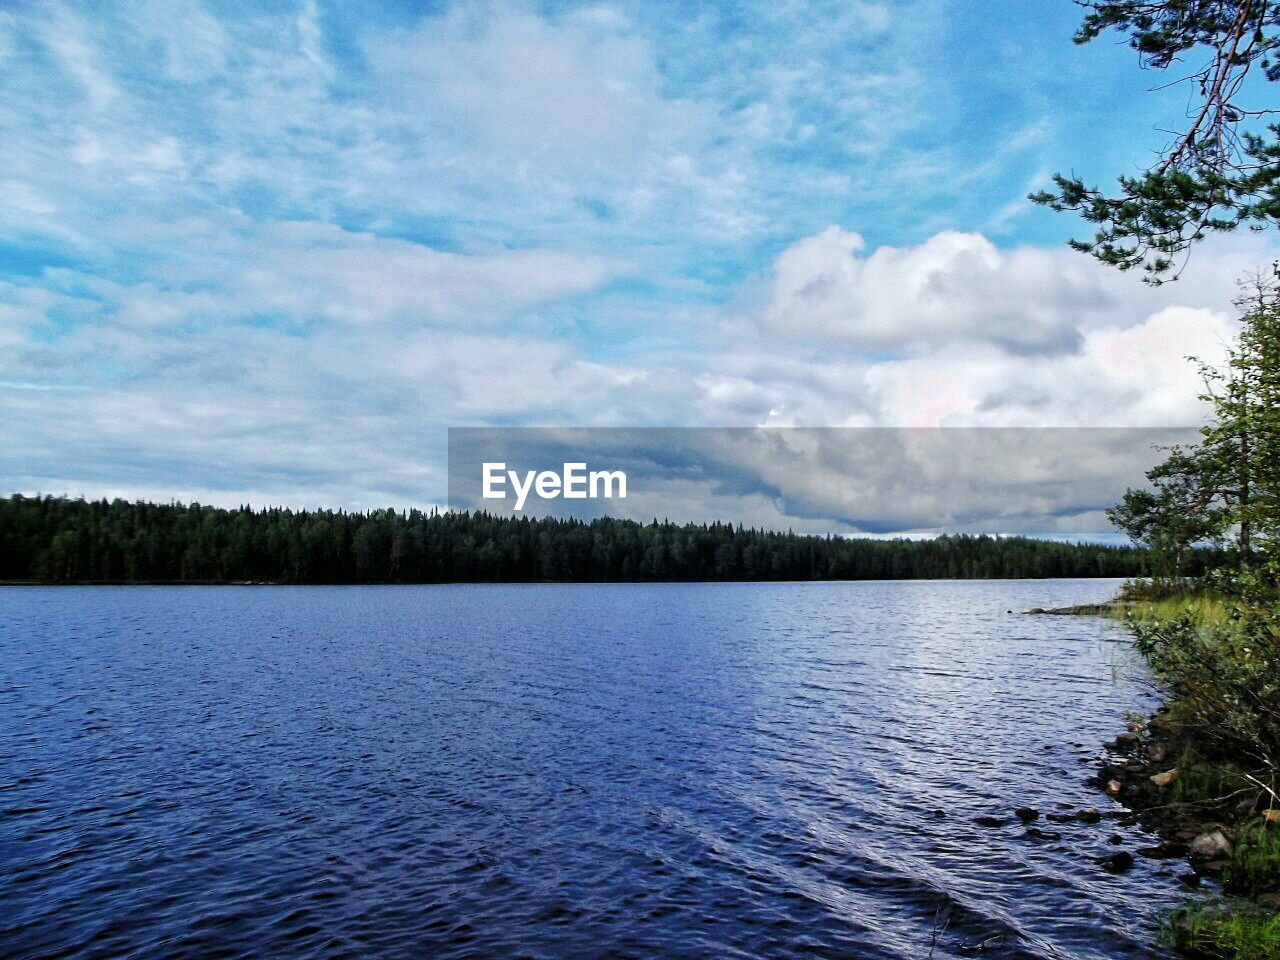 sky, tree, nature, lake, water, no people, beauty in nature, forest, outdoors, scenery, day